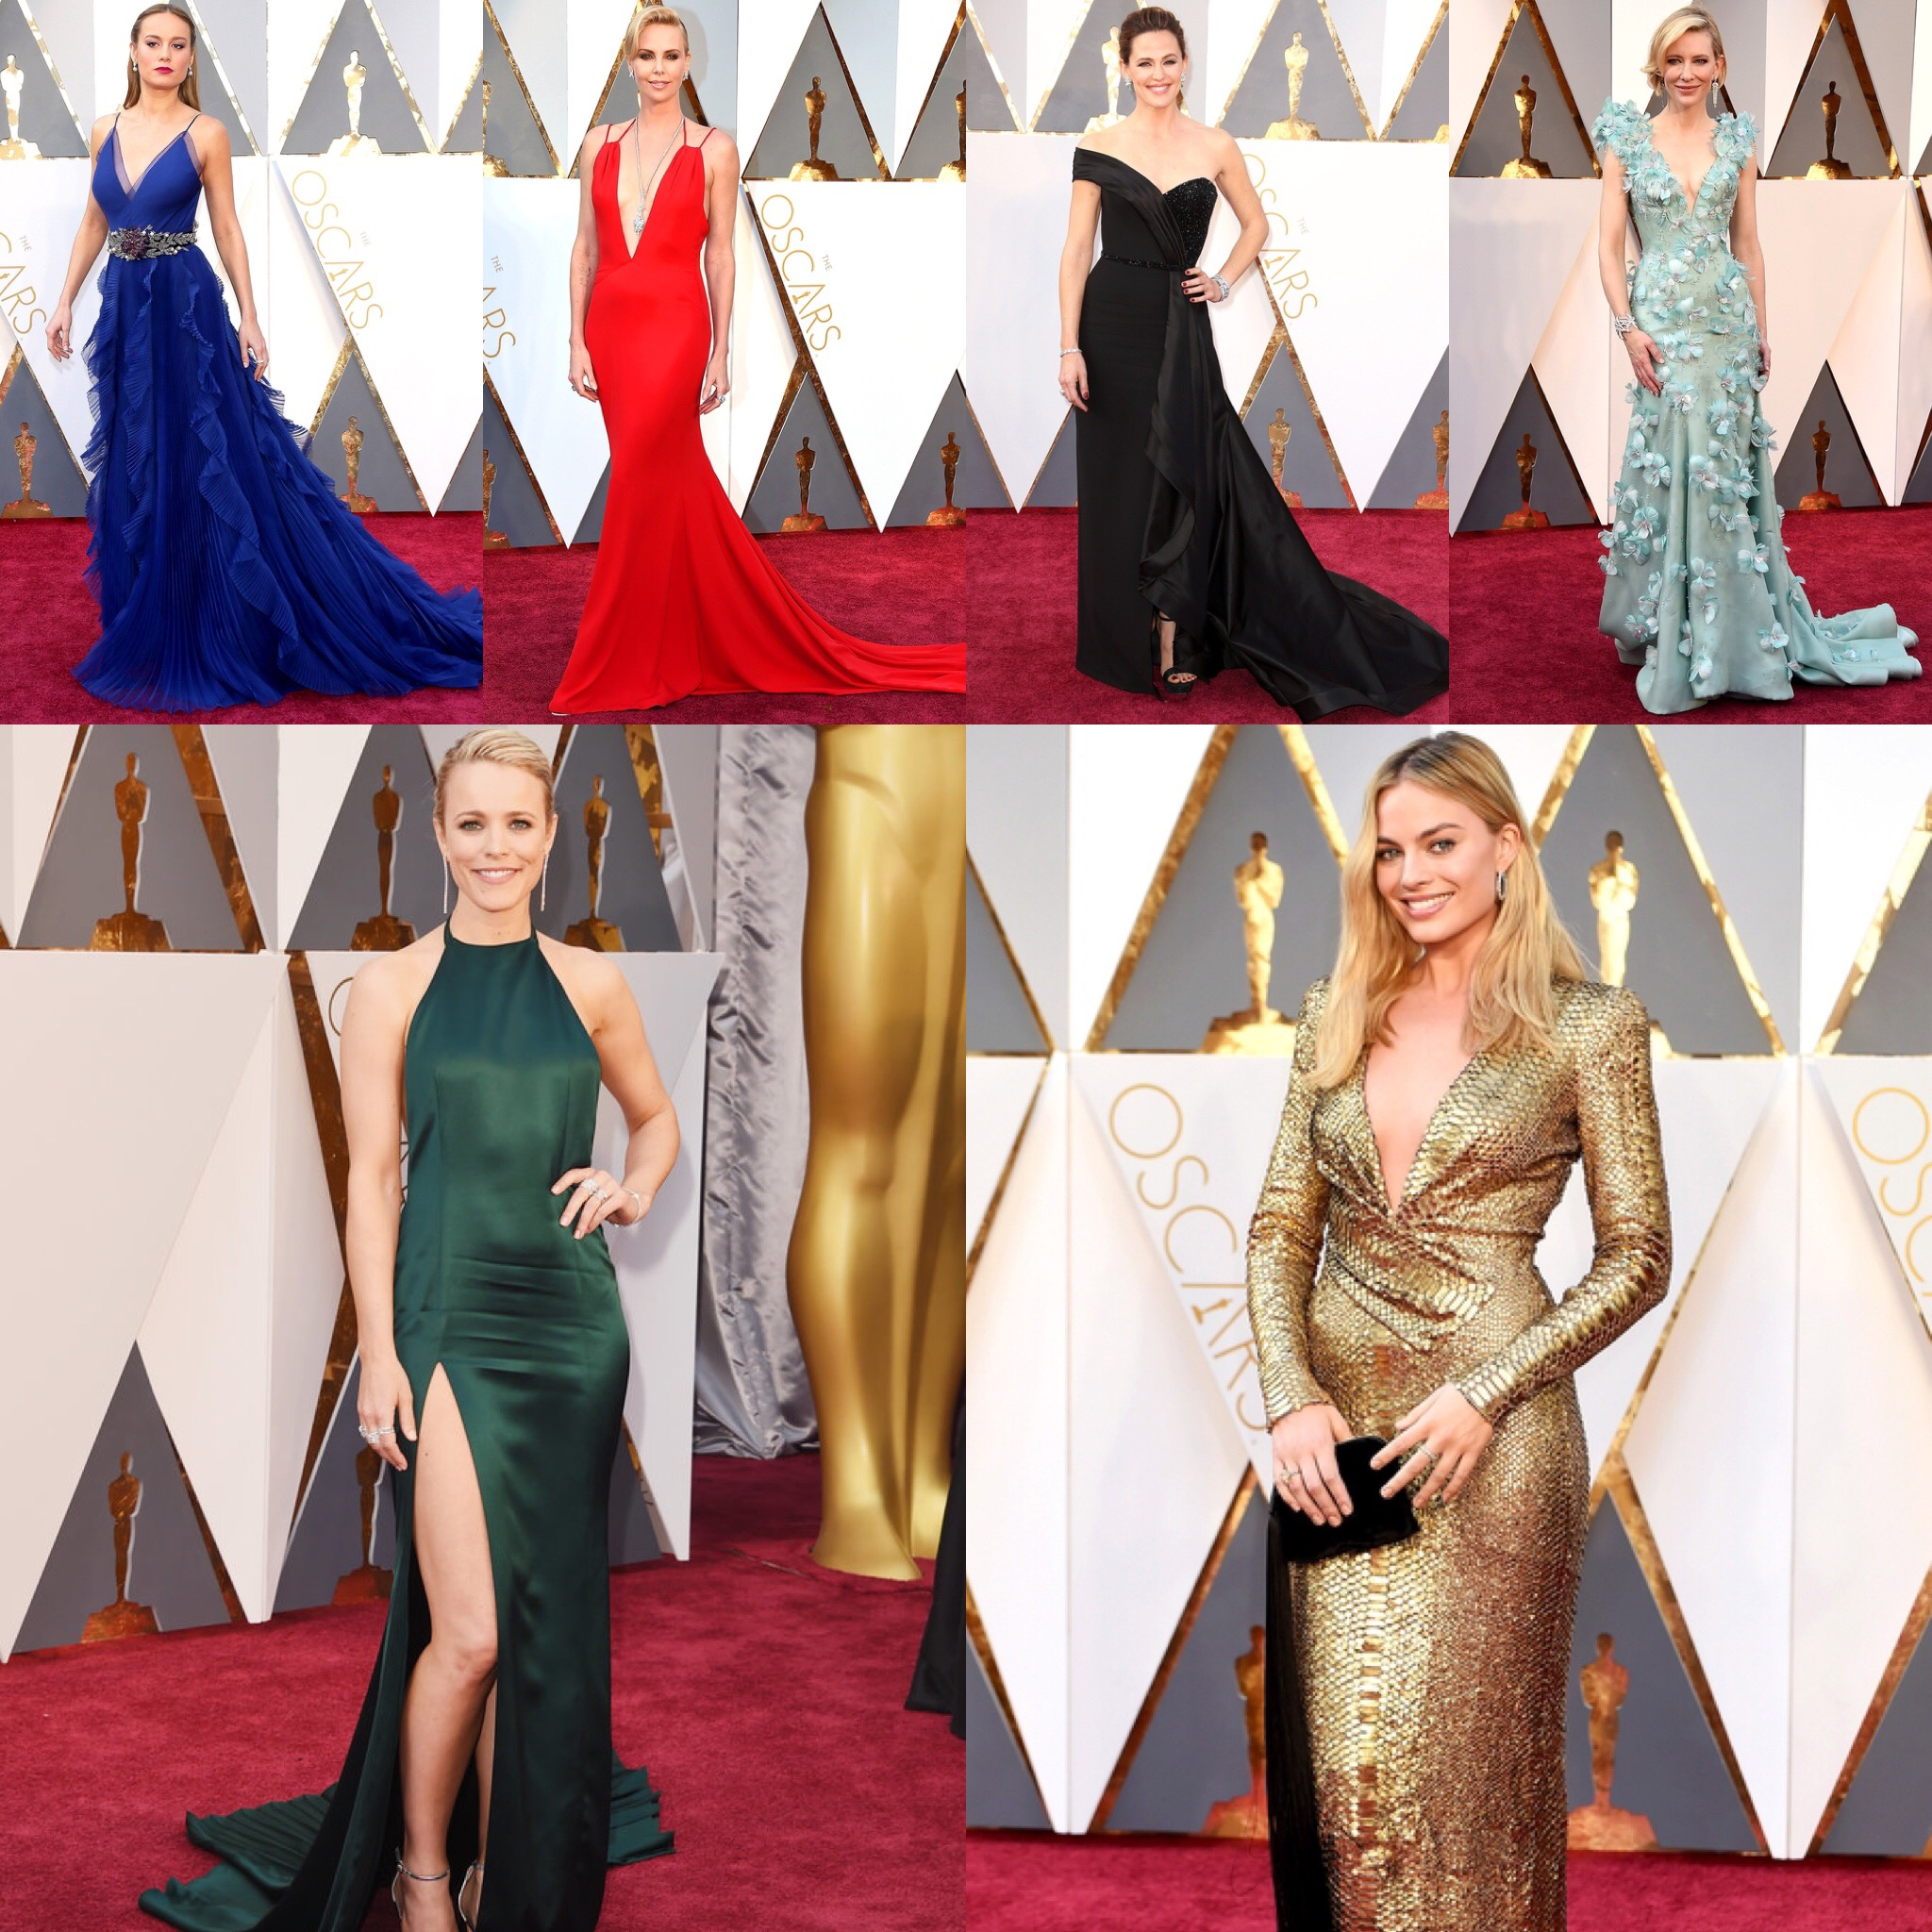 Oscars 2016 Best Dressed List